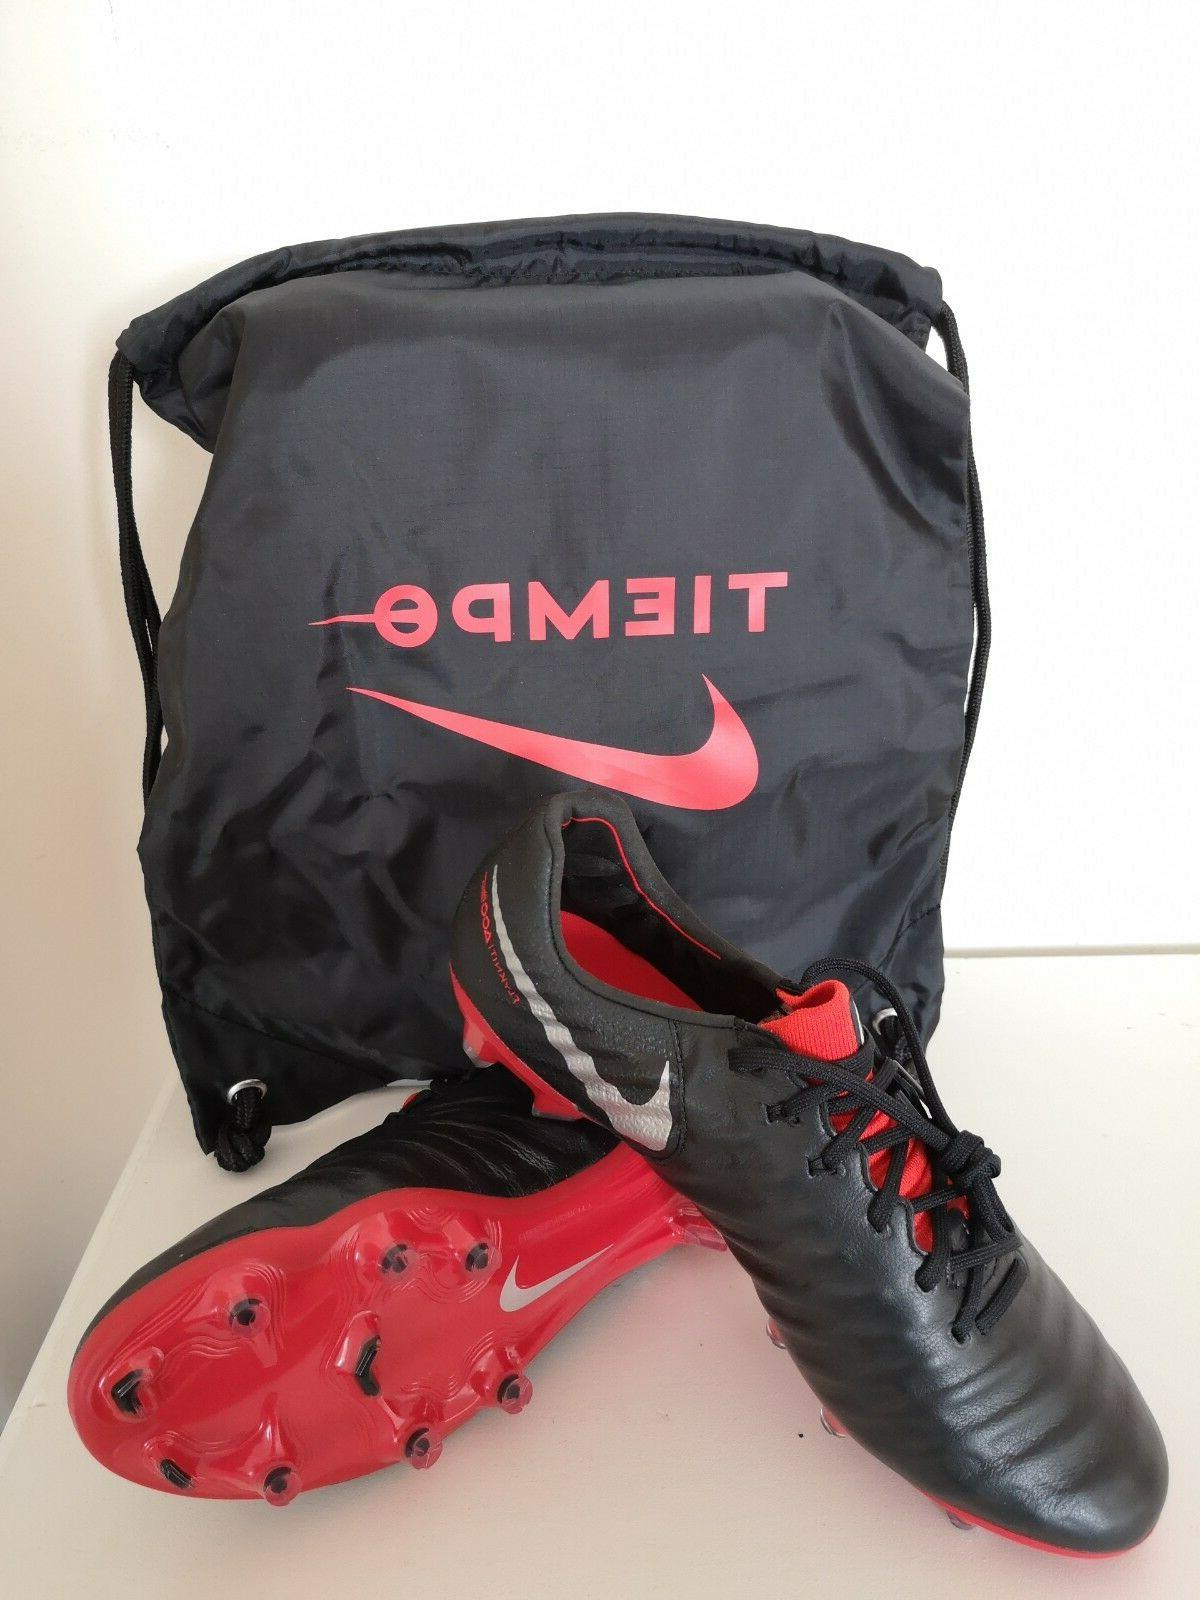 Nike Tiempo 7 VII Elite FG Black Red AH7238-006 Soccer Cleats w/